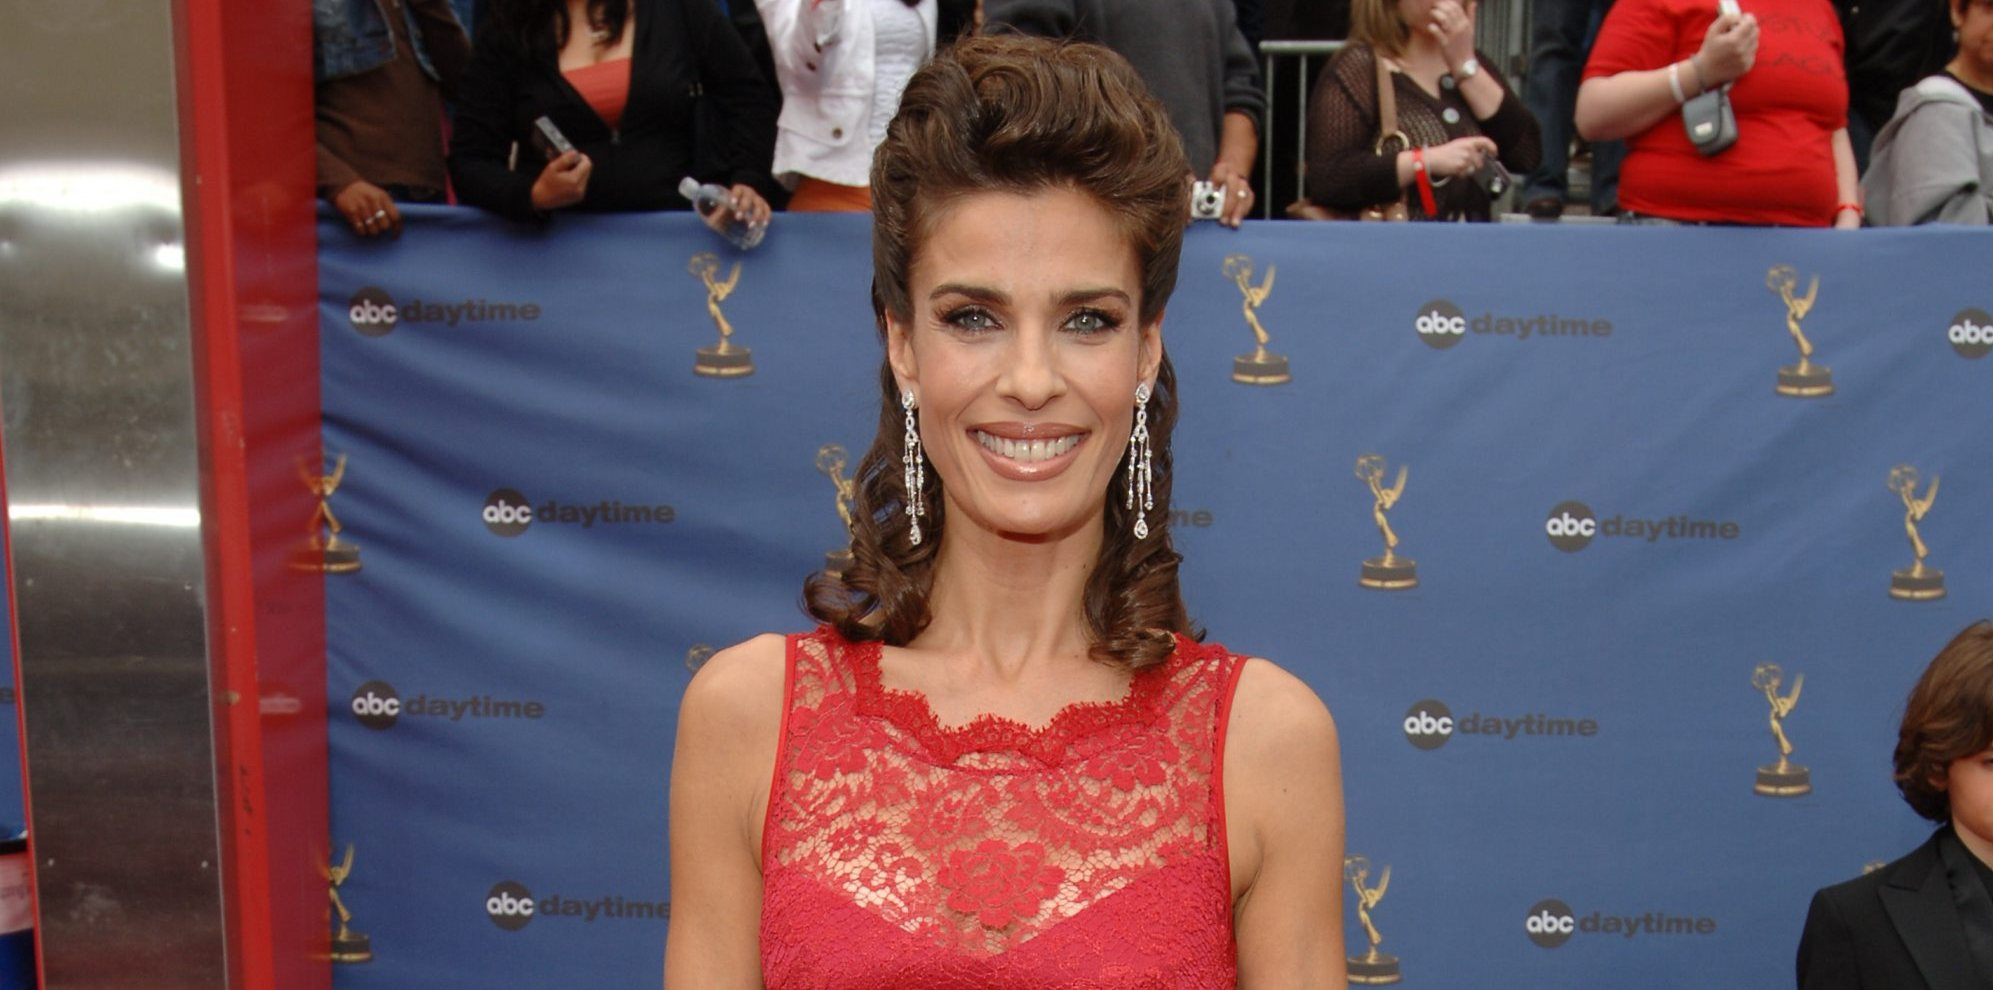 Kristian Alfonso 33rd Annual Daytime Emmy Awards - Arrivals Kodak Theatre Hollywood 4/28/06 ©Lisa Rose/jpistudios.com 310-657-9661